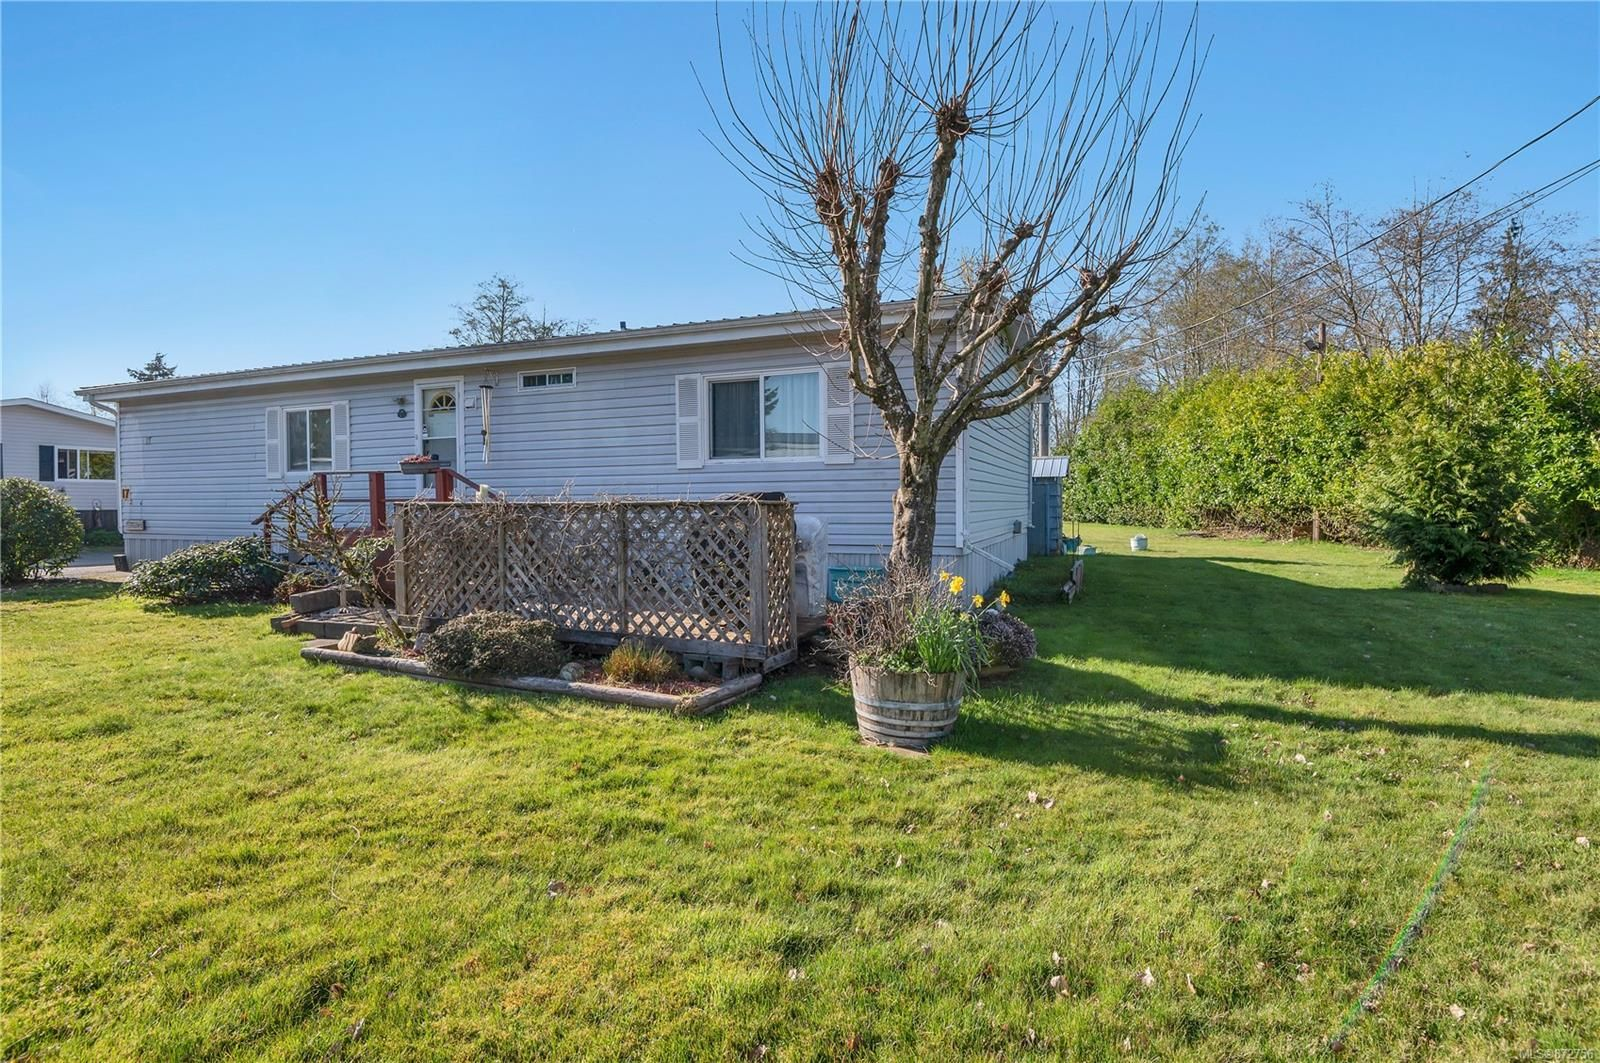 Main Photo: 17 1451 Perkins Rd in : CR Campbell River North Manufactured Home for sale (Campbell River)  : MLS®# 872756